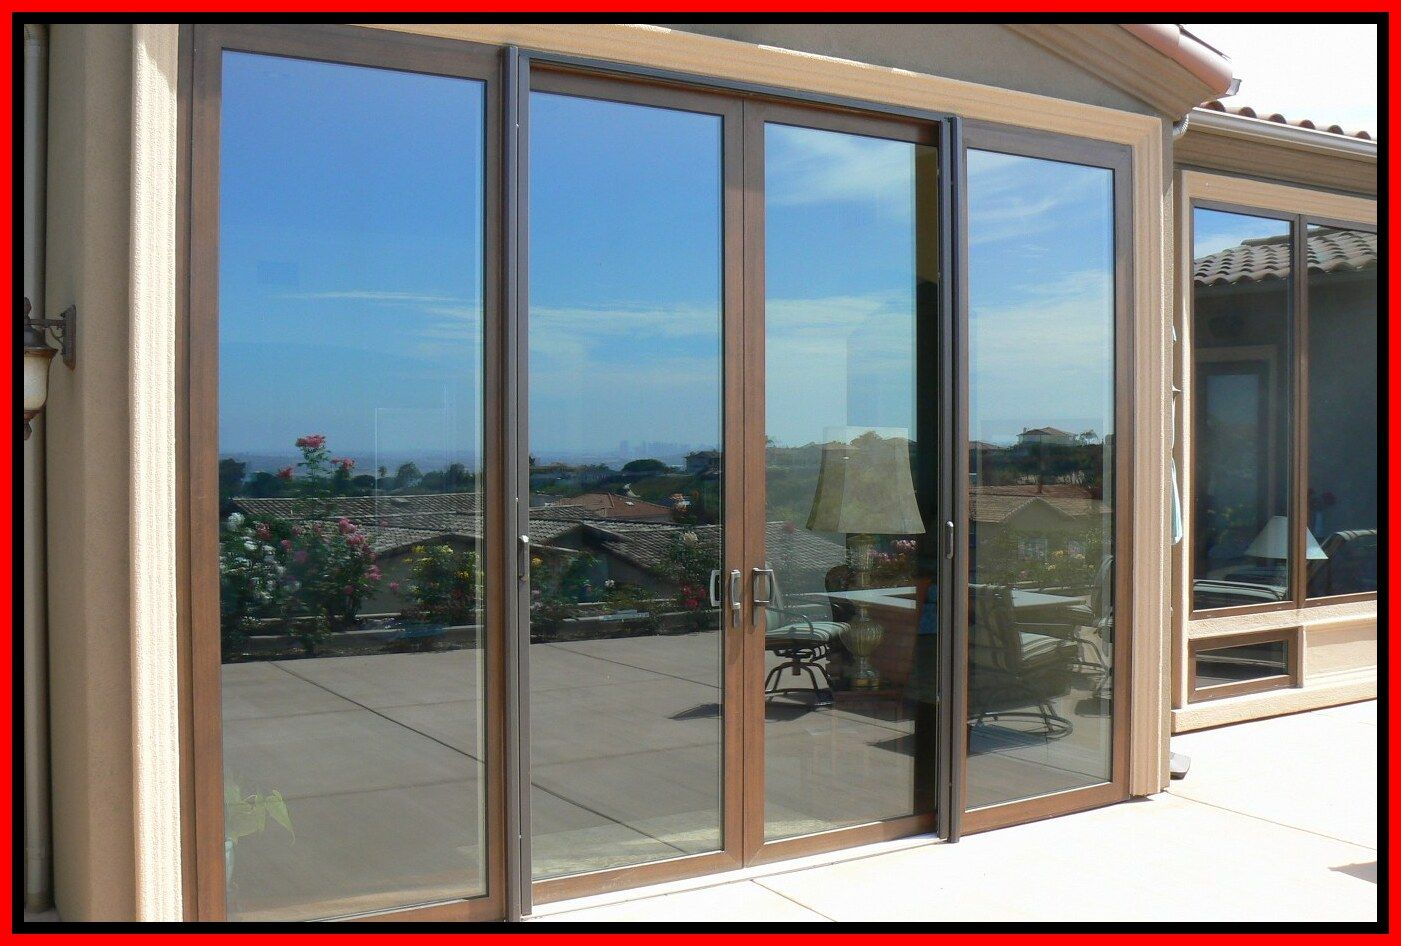 105 Reference Of Multi Slide Patio Doors Cost In 2020 Door Cost Patio Doors Sliding Patio Doors